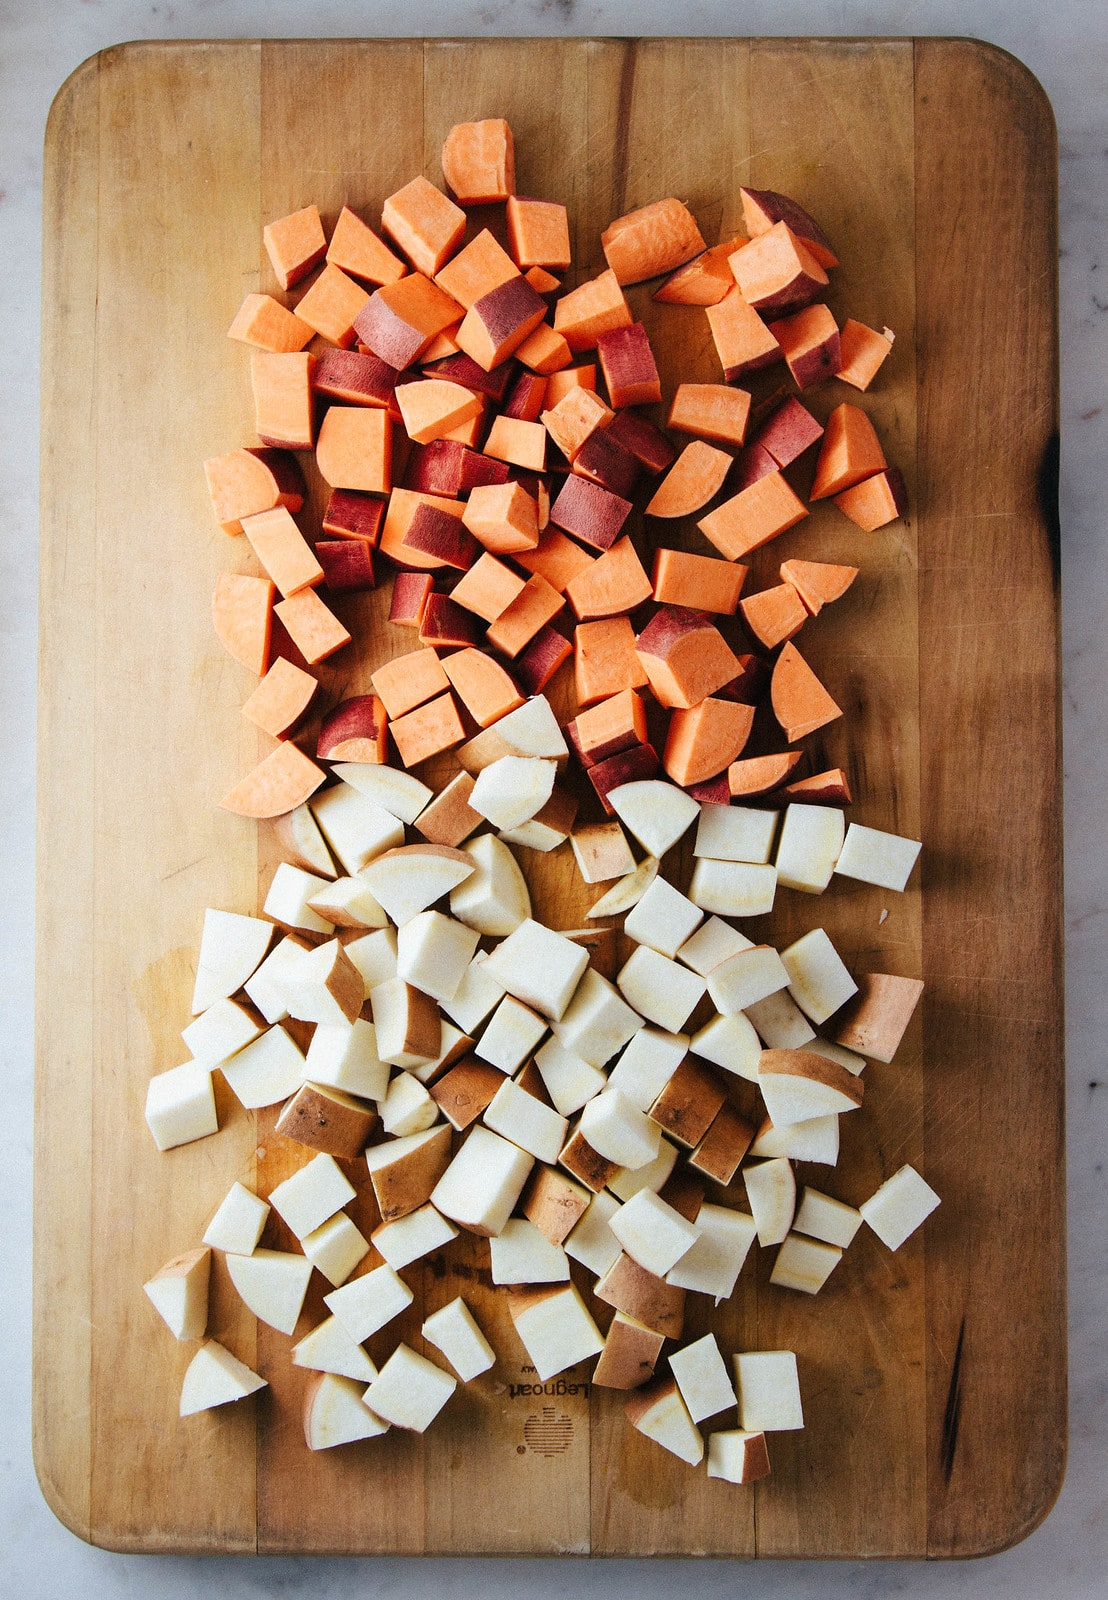 top down view of cubed sweet potatoes on a cutting board.